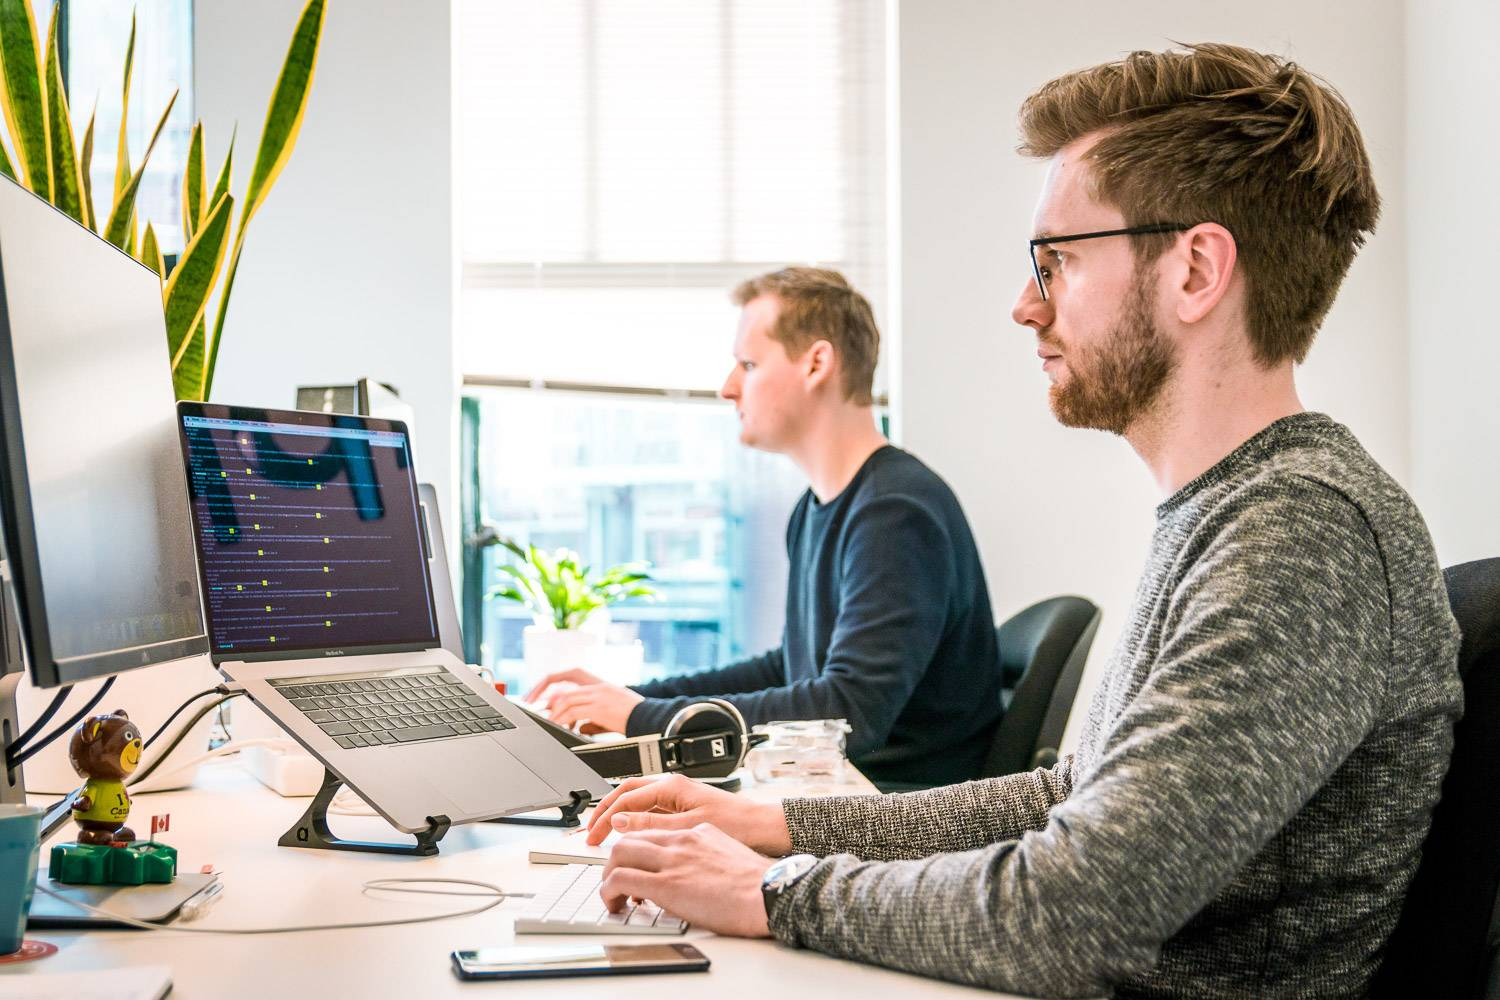 Image of two men on computers in an office